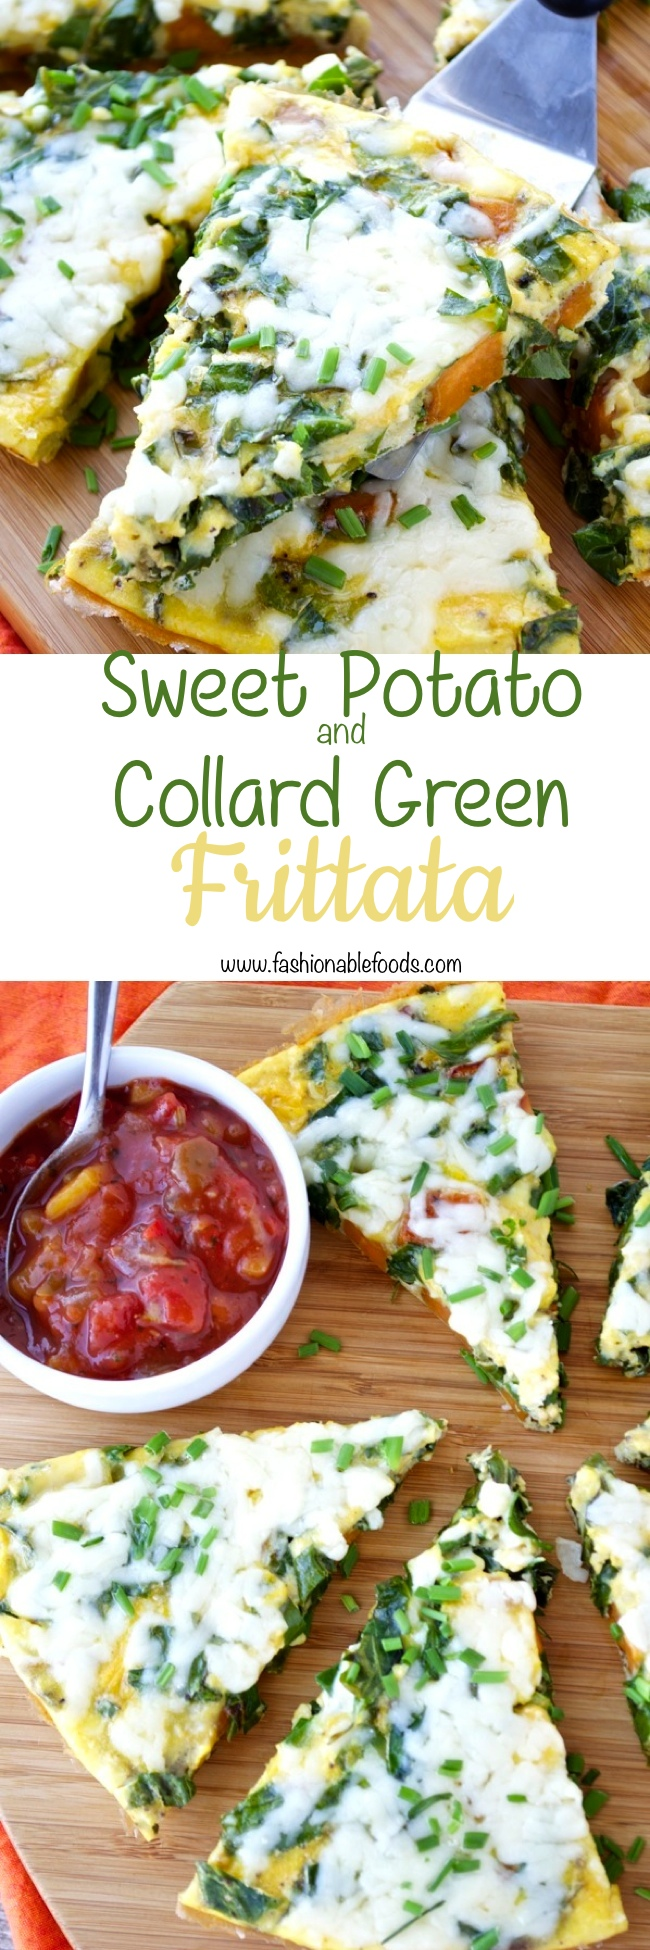 how to make healthy roasted vegetable frittata w potato